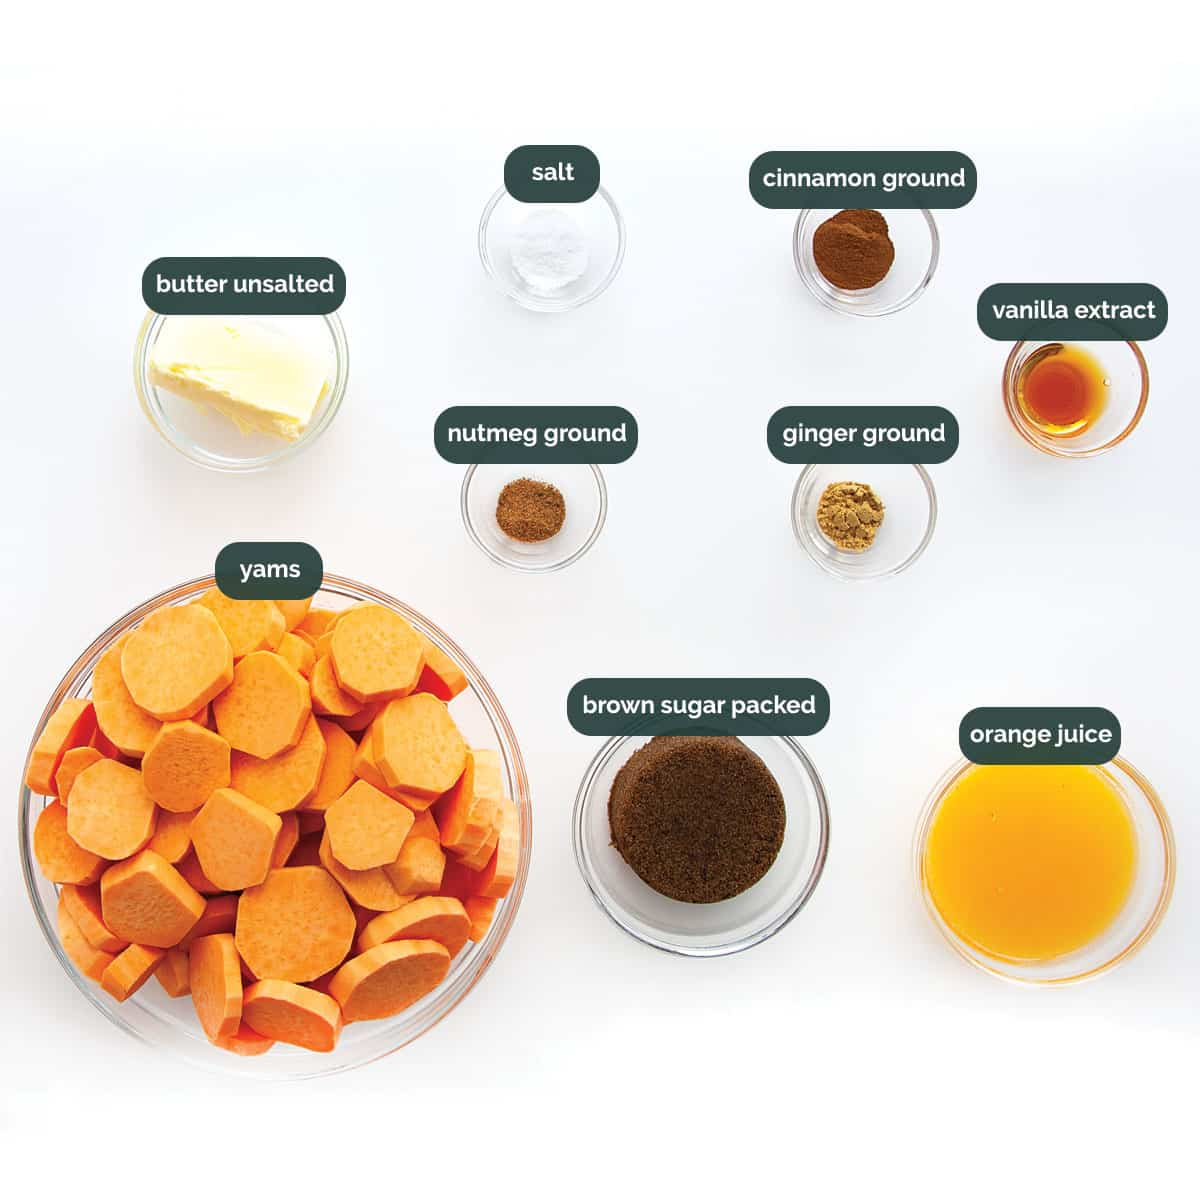 overhead of all the ingredients needed to make candied yams.